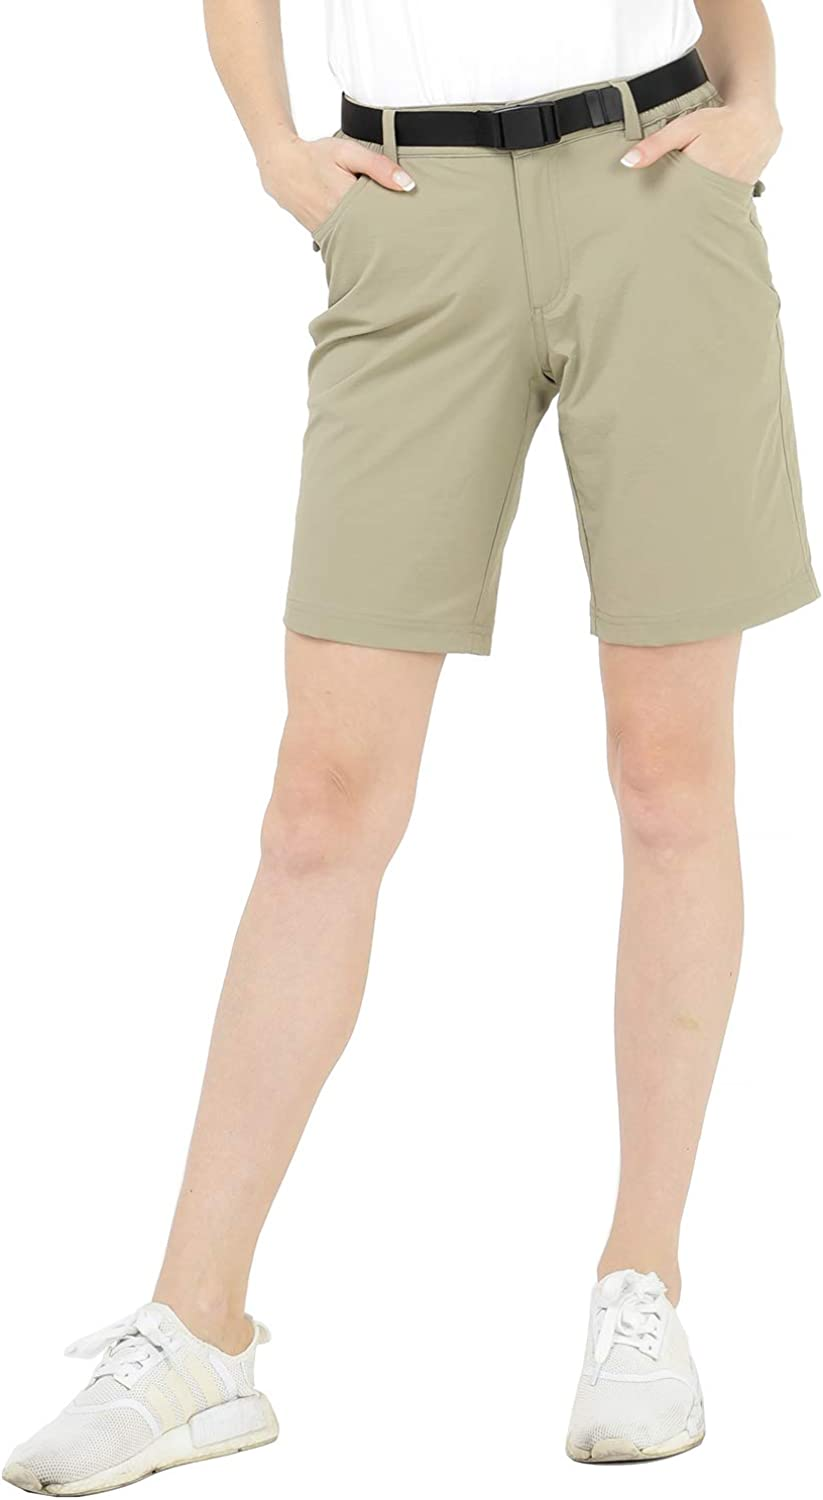 MIER Womens Quick Dry Hiking Shorts Stretchy Shorts,Water Resistant and Lightweight Exclude Belt